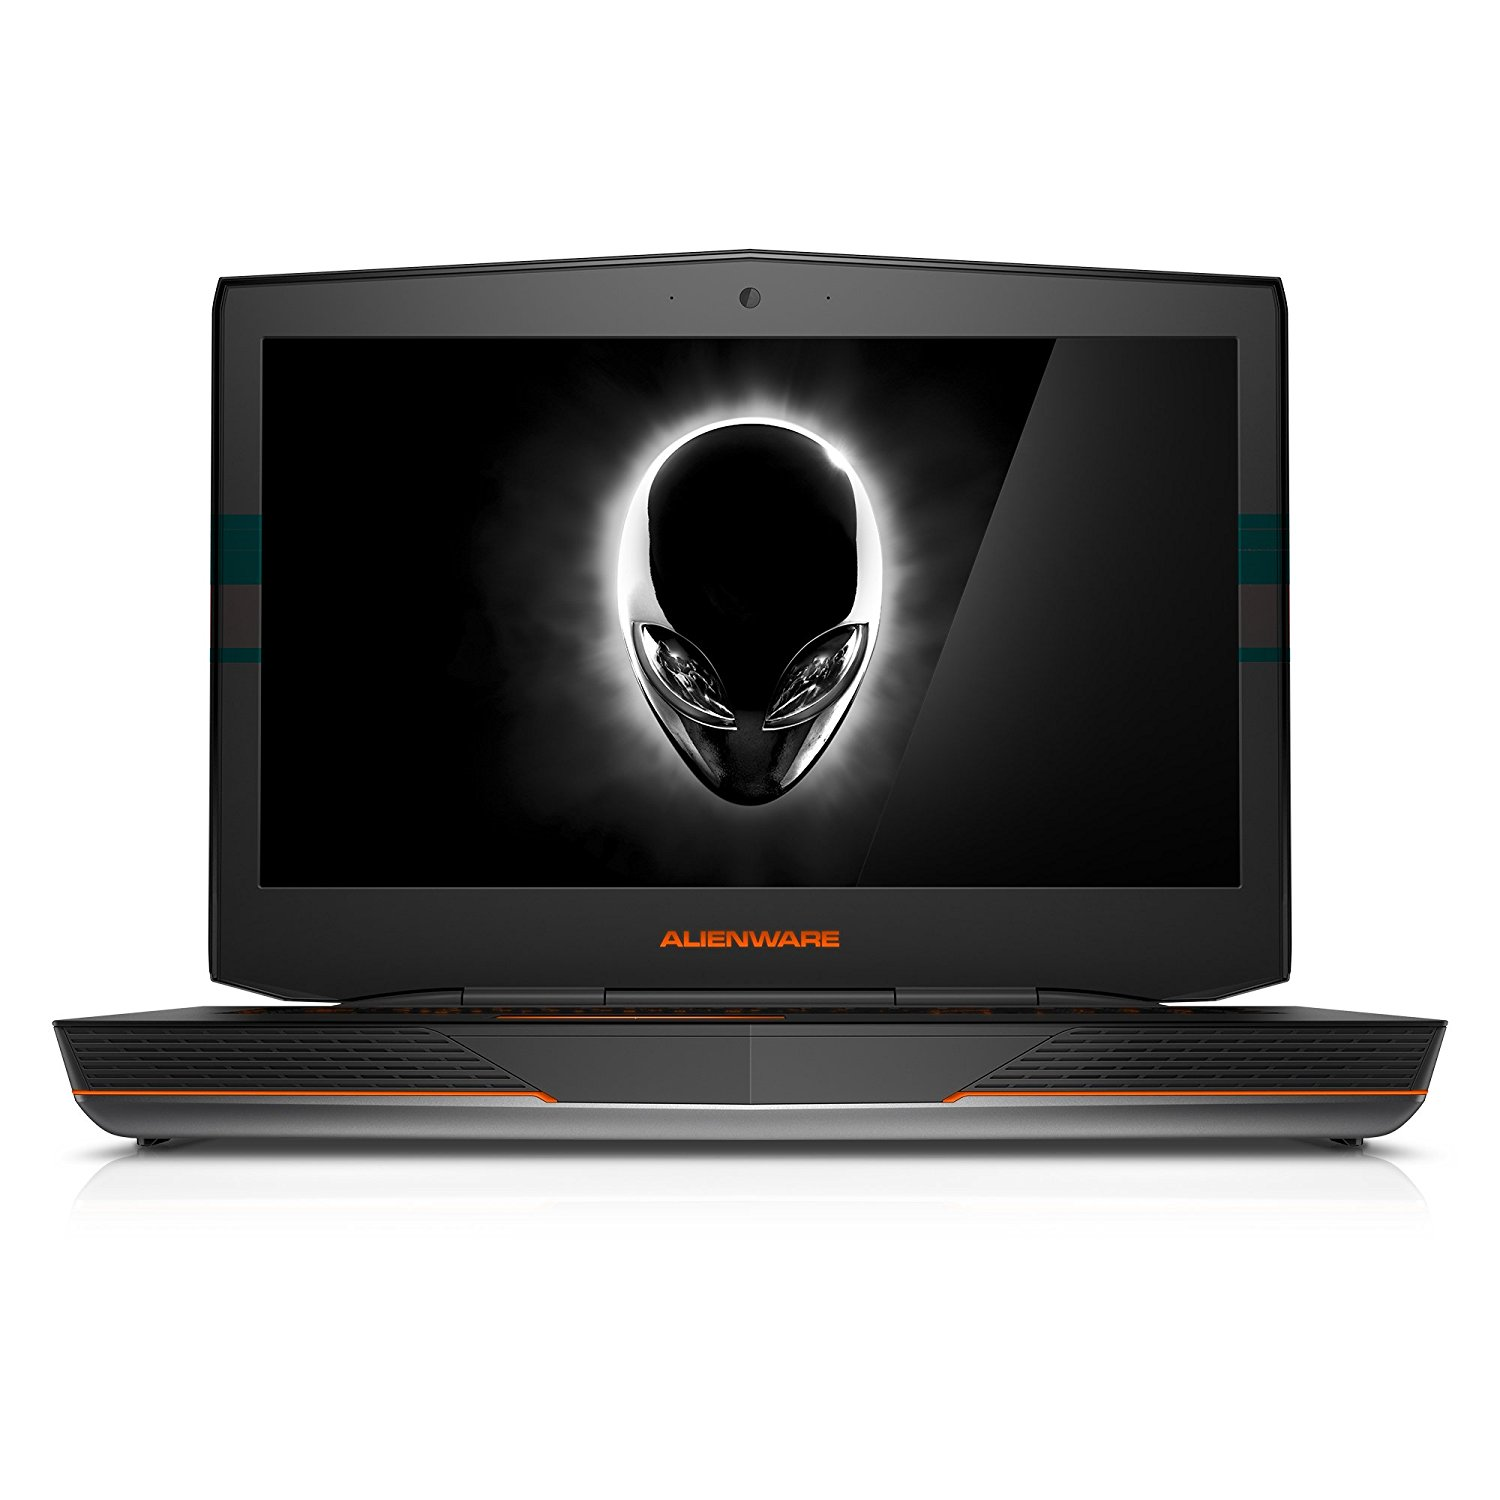 "Dell Alienware 15 i5-6300HQ 15.6"" 8/1000/GTX 965M/Backlit Keyboard/Win10H/WEBCAM/1920x1080, Срібний"